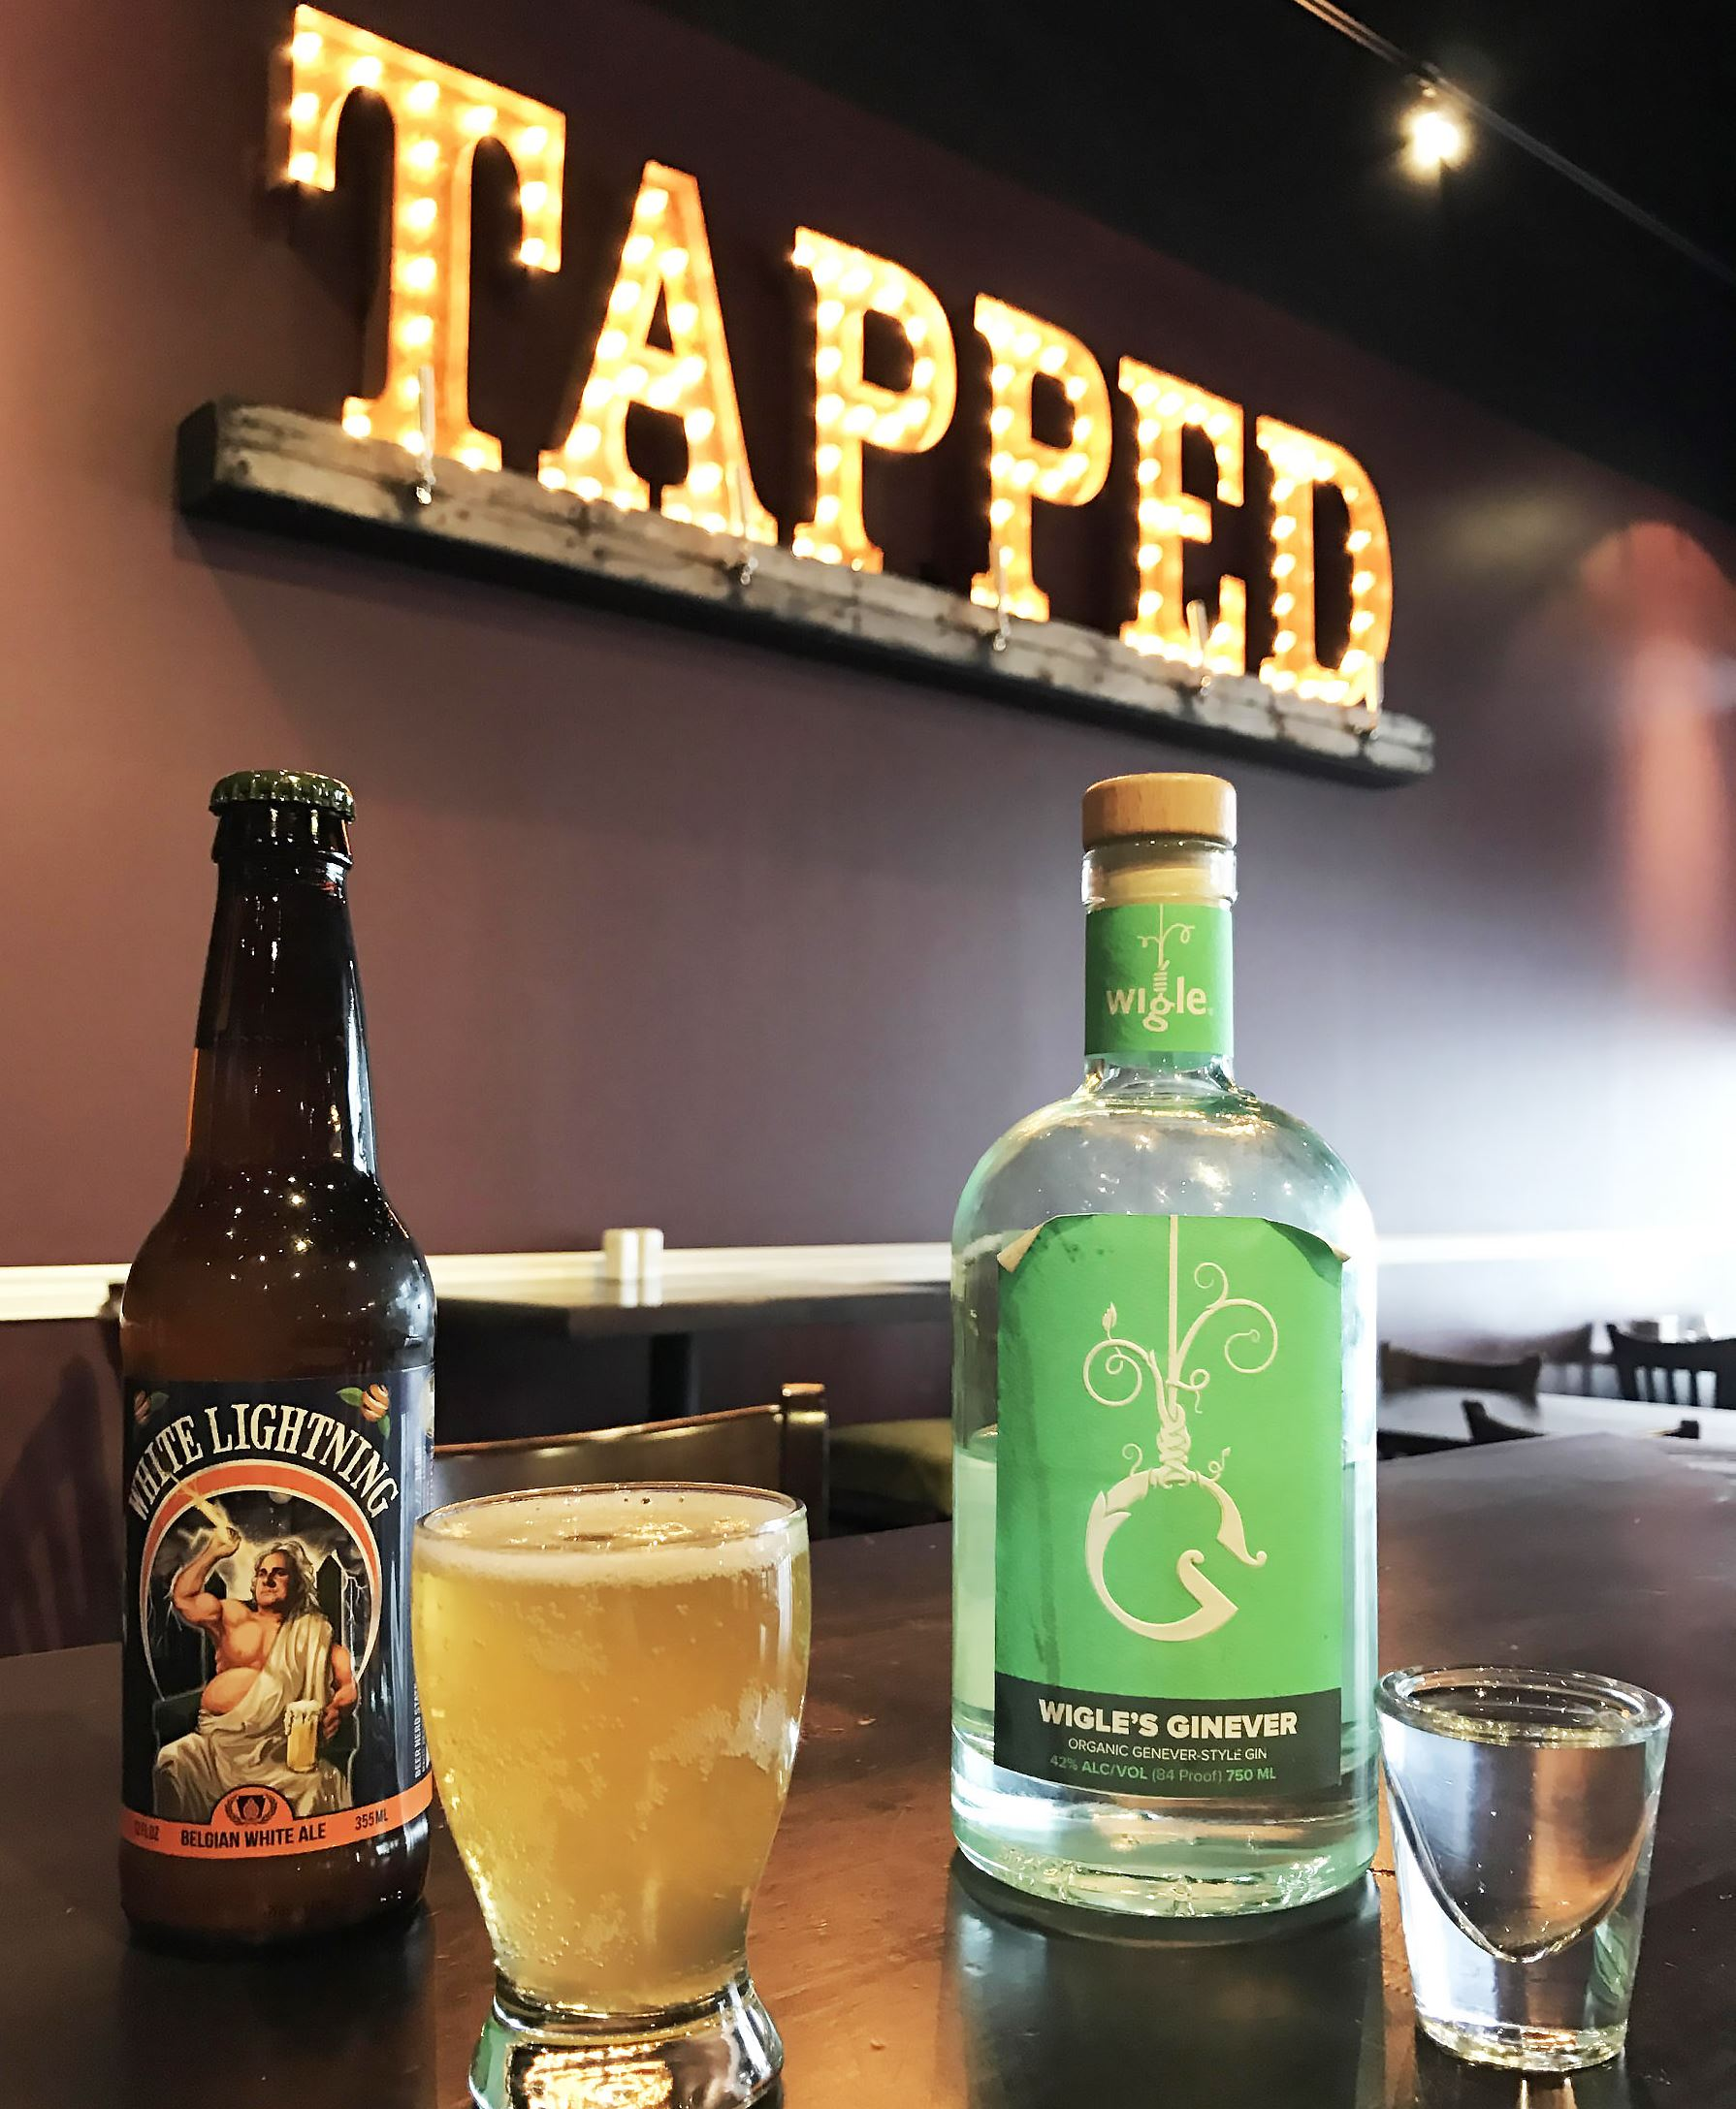 tapped boilermaker 2-1 On March 10, Tapped Brick Oven & Pour House in Hempfield will be pouring craft boilermakers pairing Full Pint Brewing beers with Wigle spirits.